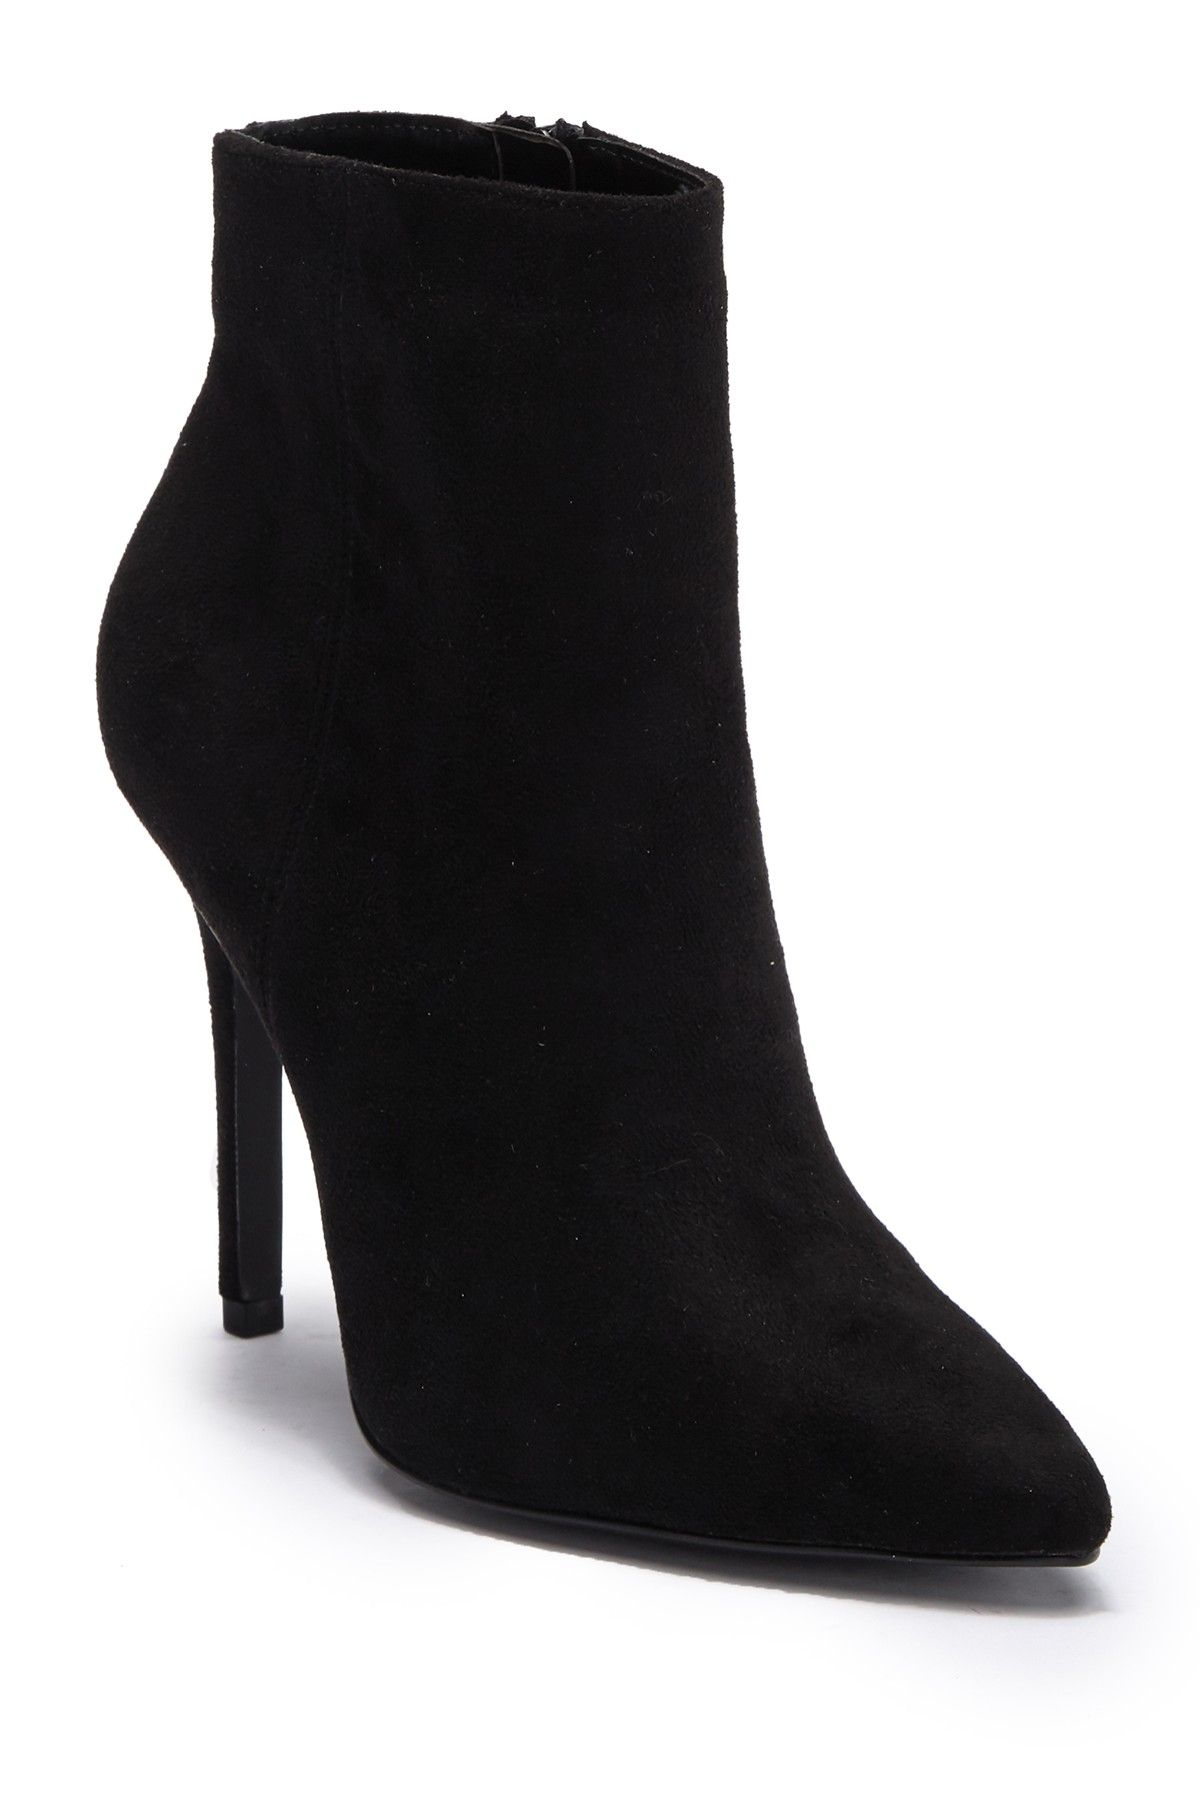 cfdce95492b0 Charles By Charles David - Delicious 2 Ankle Boot is now 50% off. Free  Shipping on orders over  100.